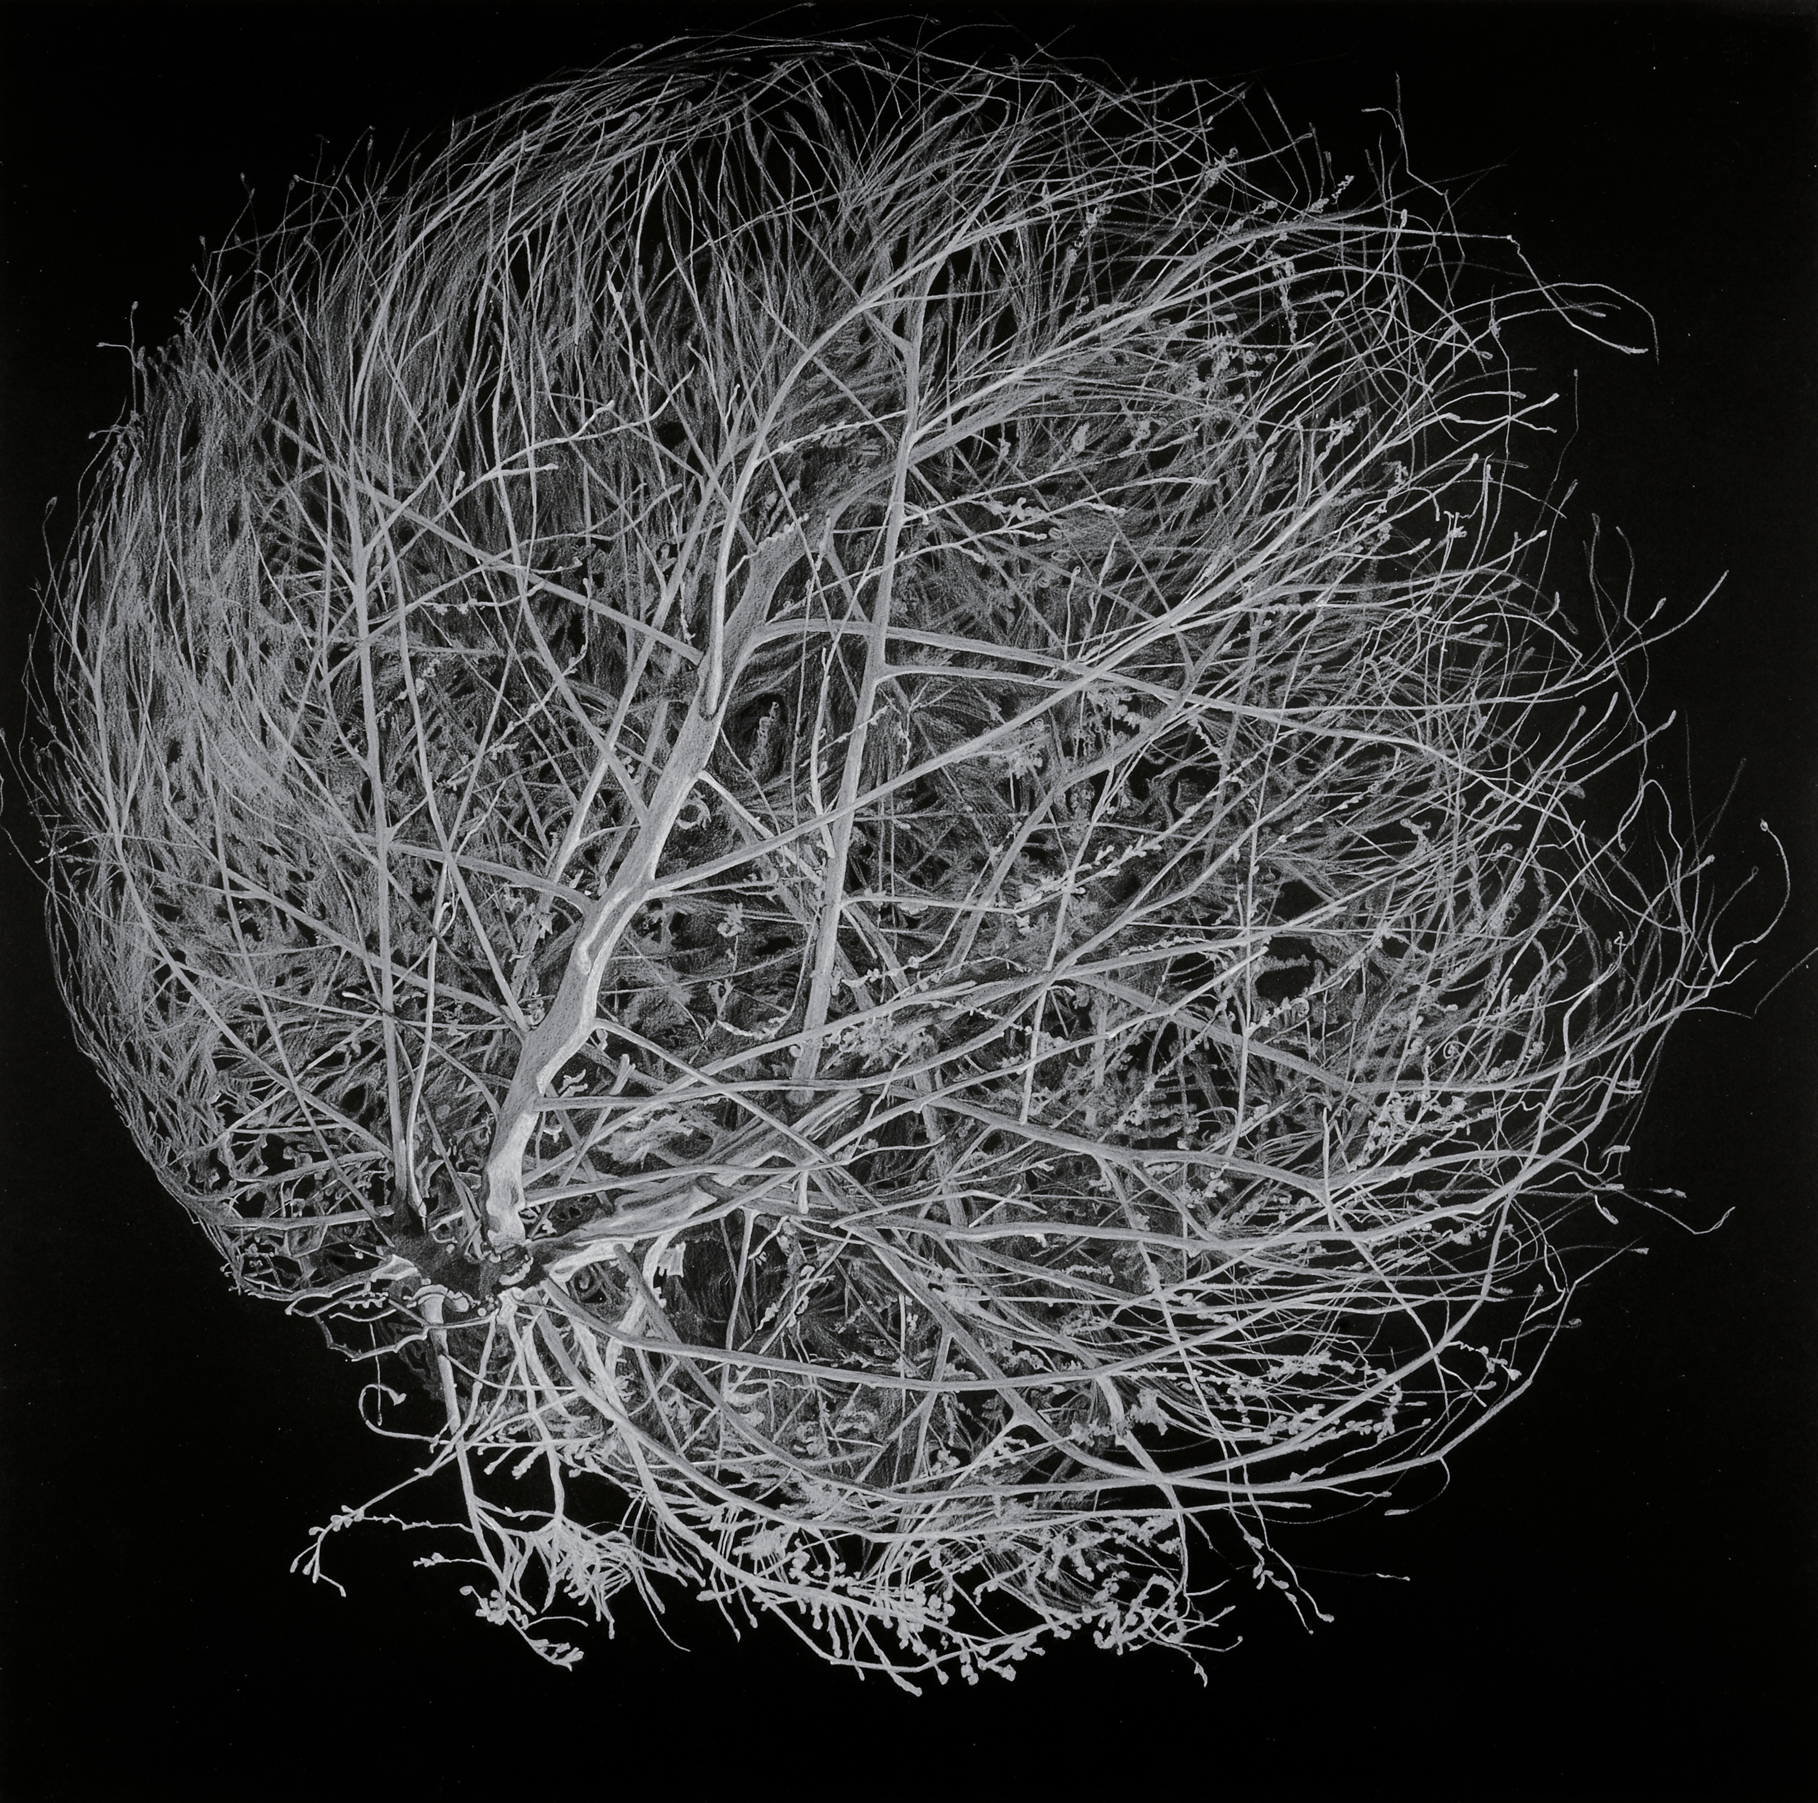 Tumbleweed On Black, 22.5 x 22.5 in, pencil on paper, 2012